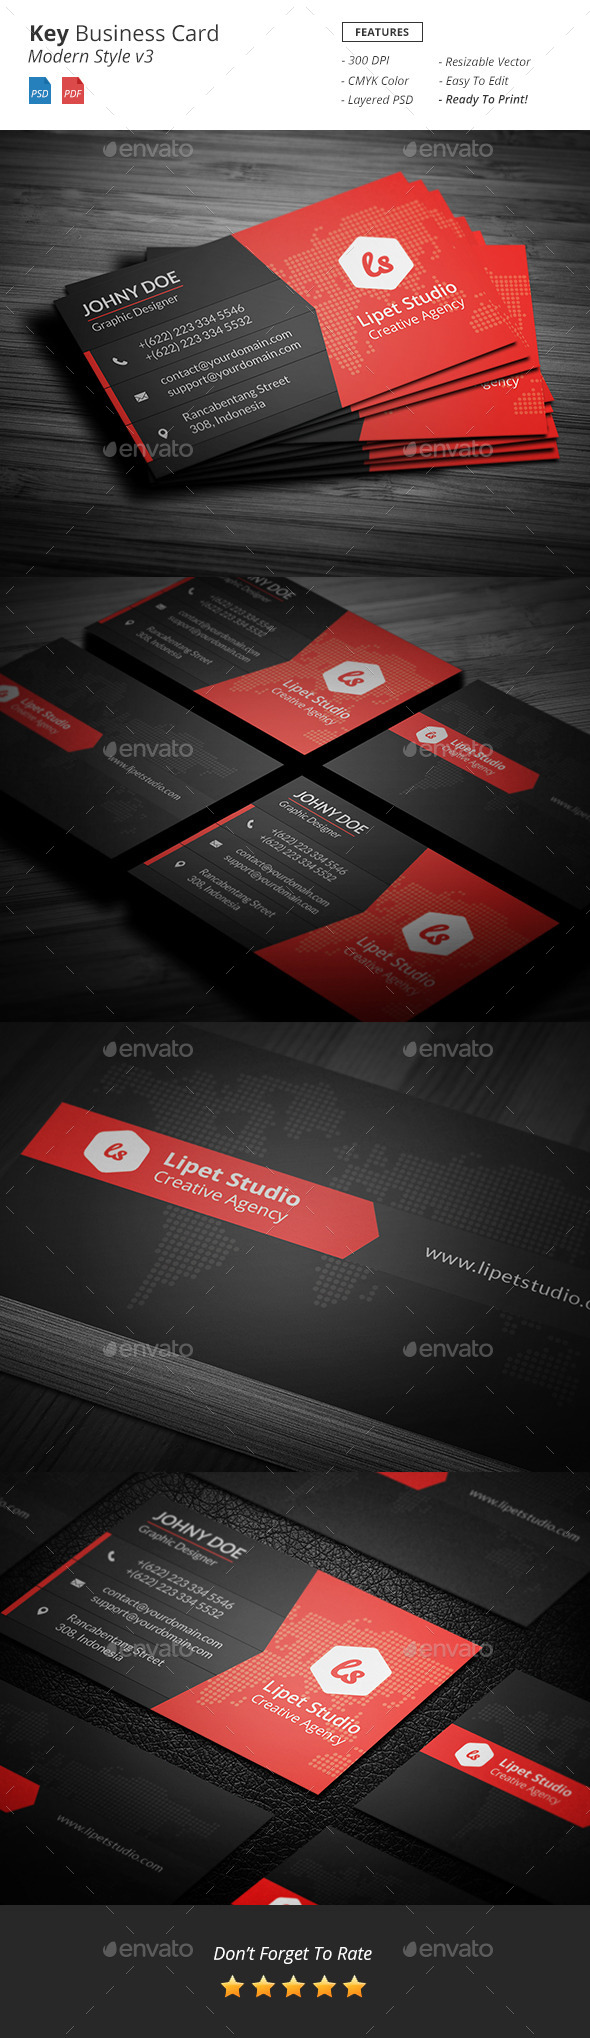 Key Modern Business Card Template v3